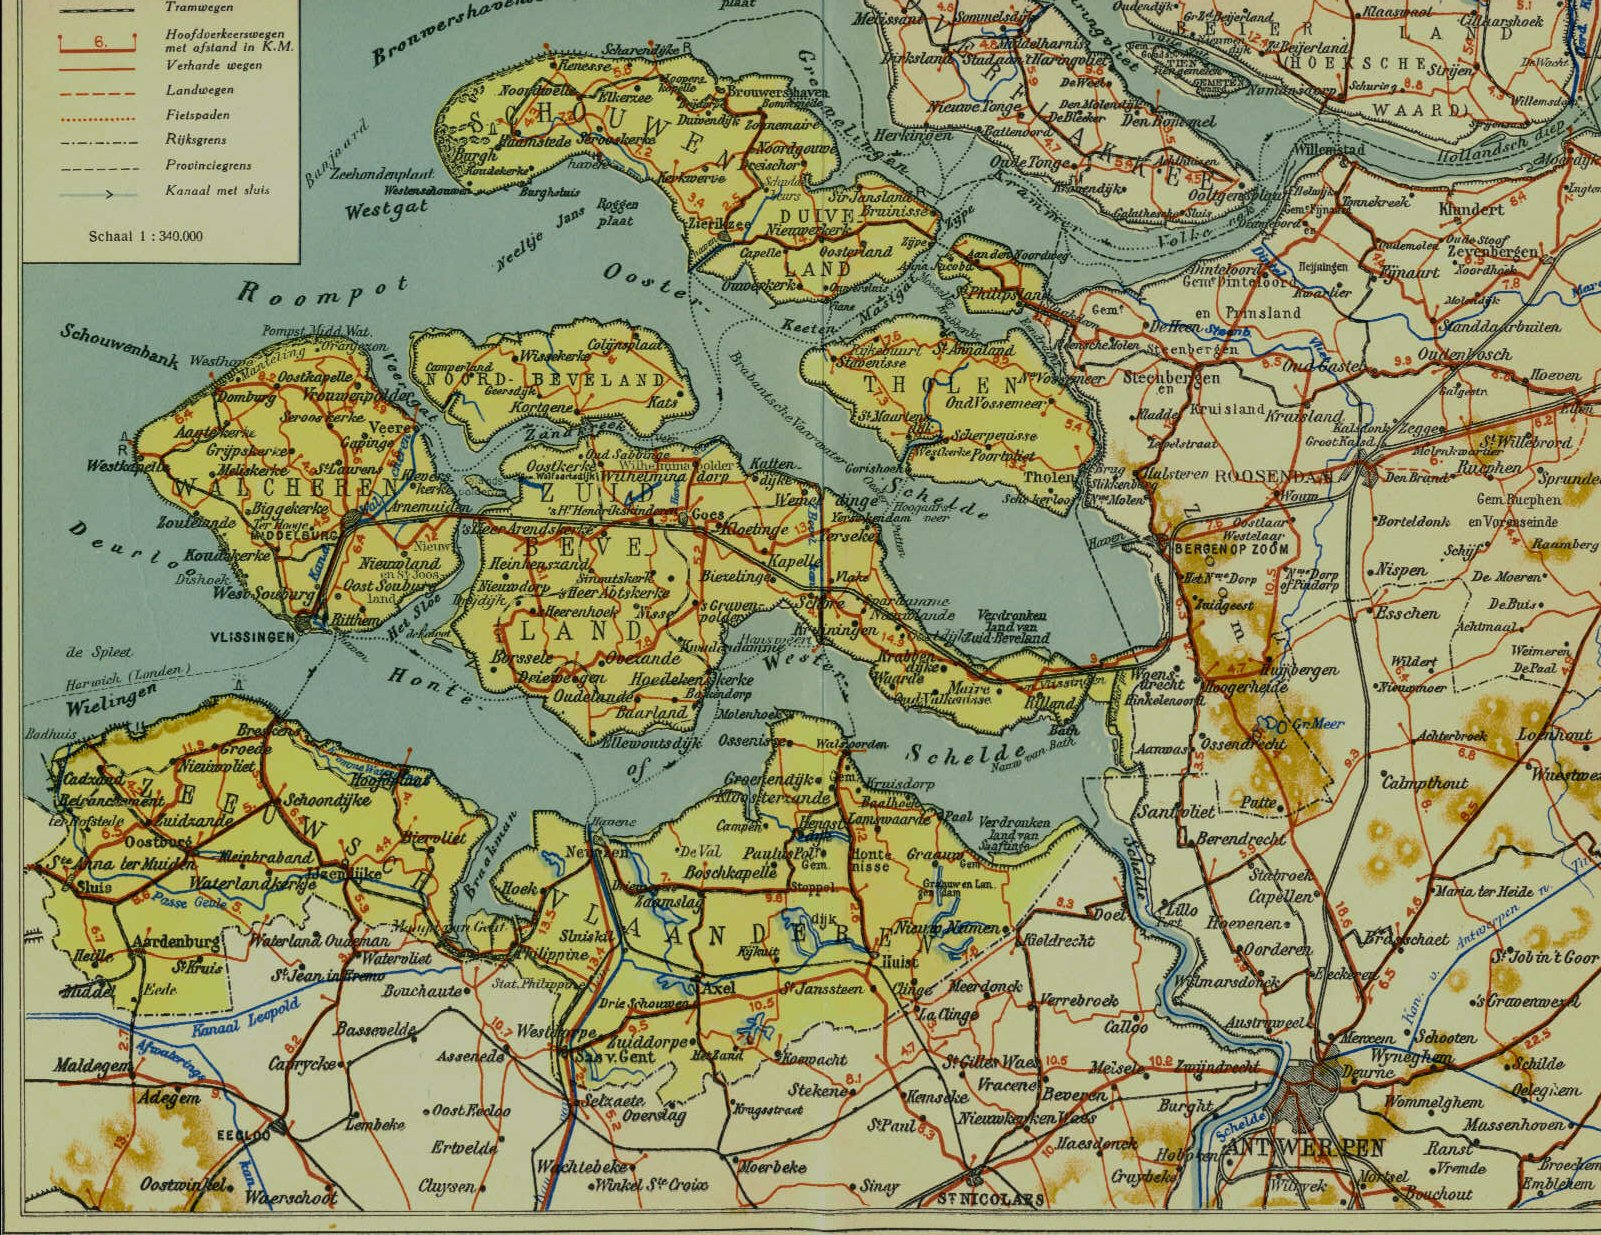 zeeland guys Search the world's information, including webpages, images, videos and more google has many special features to help you find exactly what you're looking for.